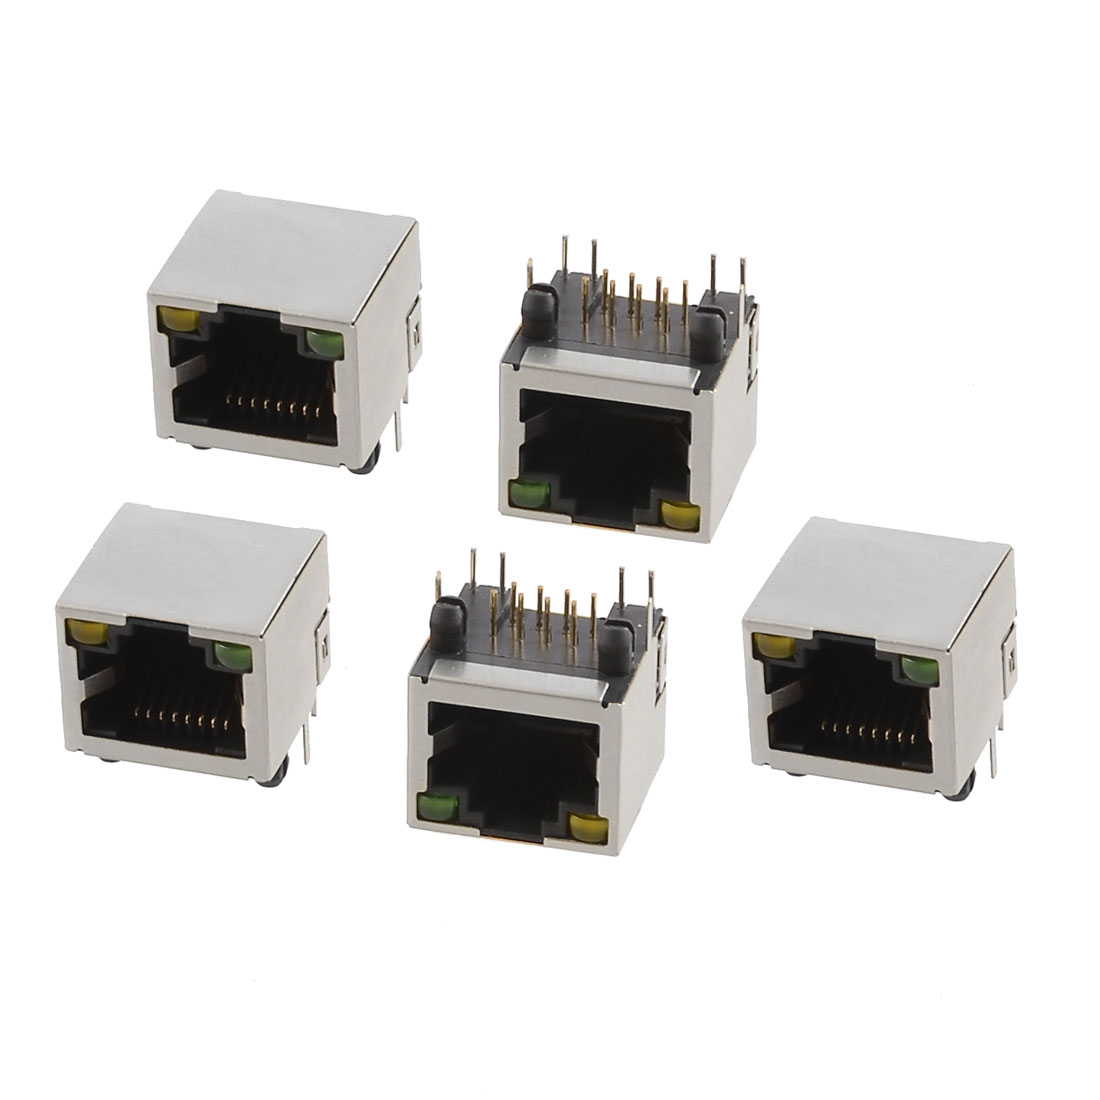 5 Pcs Shielded Network RJ45 8 Terminals Modular PCB Jacks